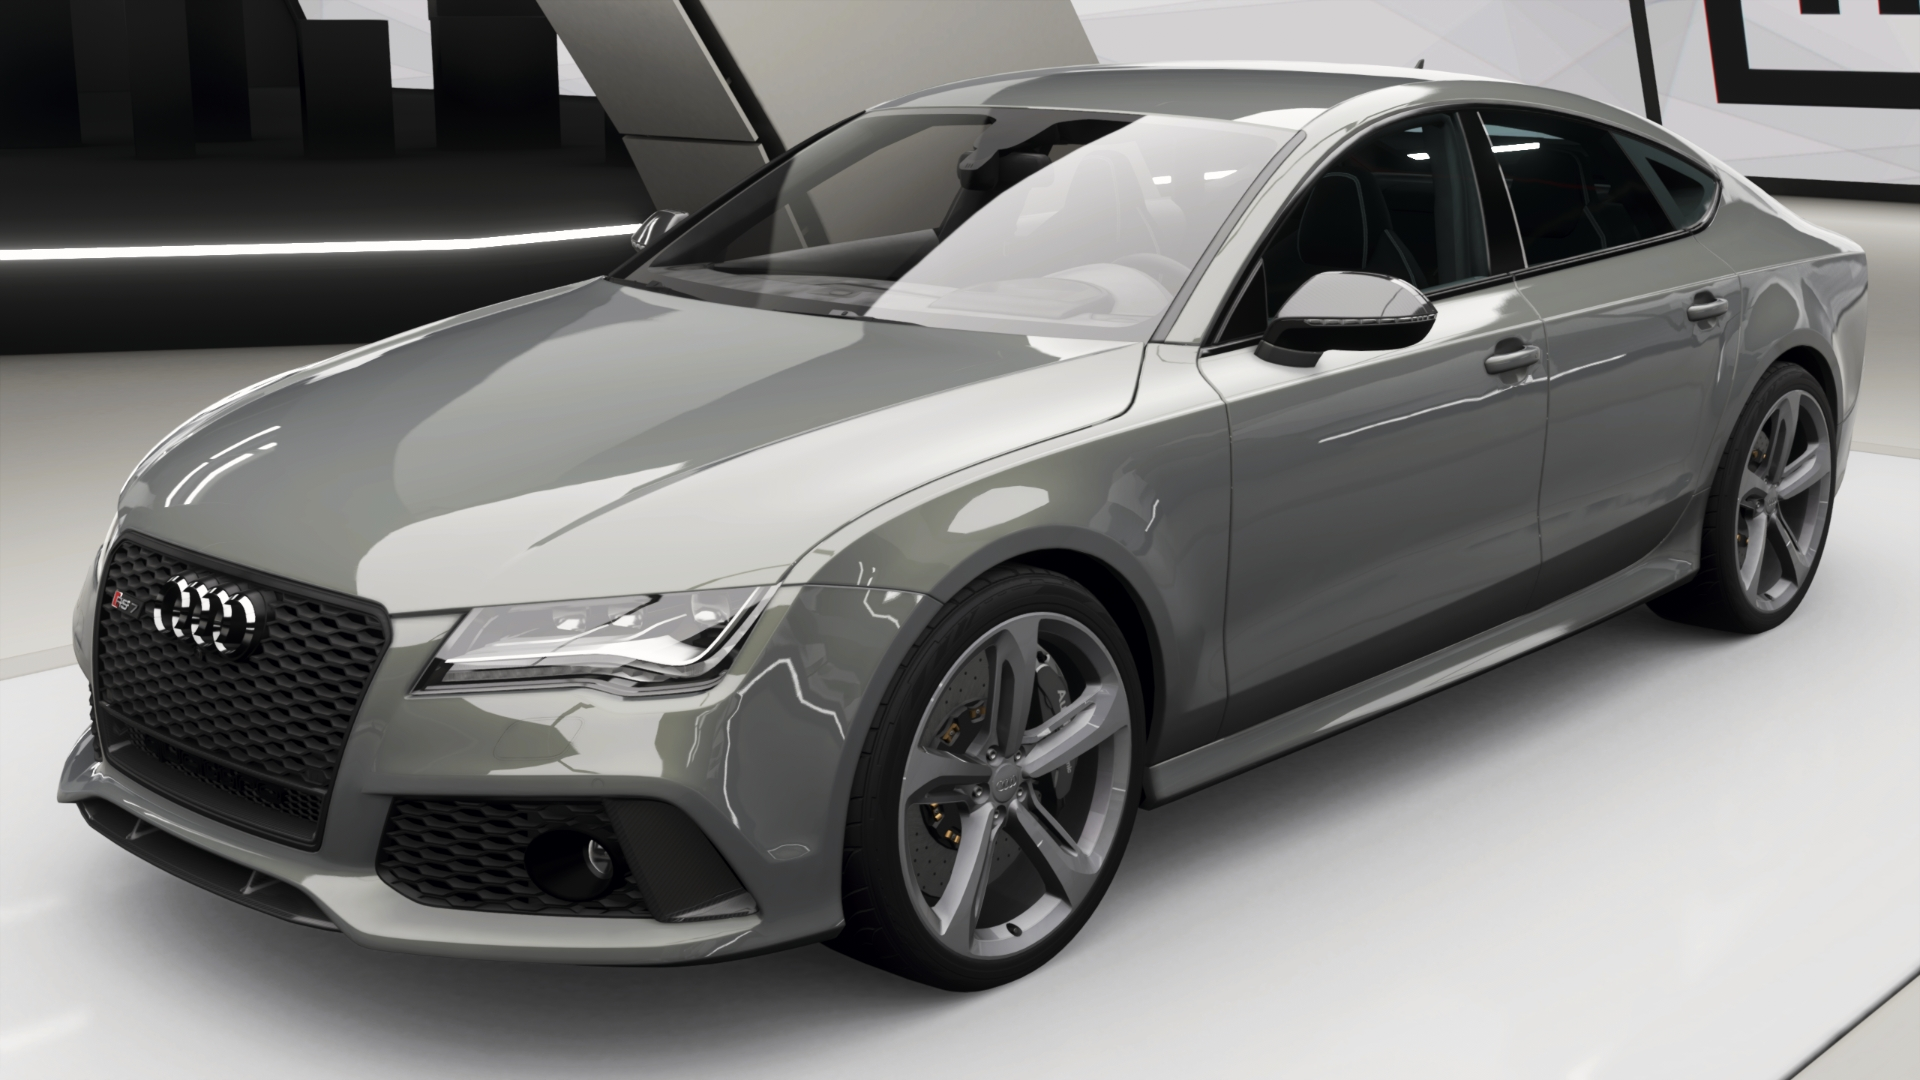 Audi Rs 7 Sportback Forza Motorsport Wiki Fandom Powered By Wikia